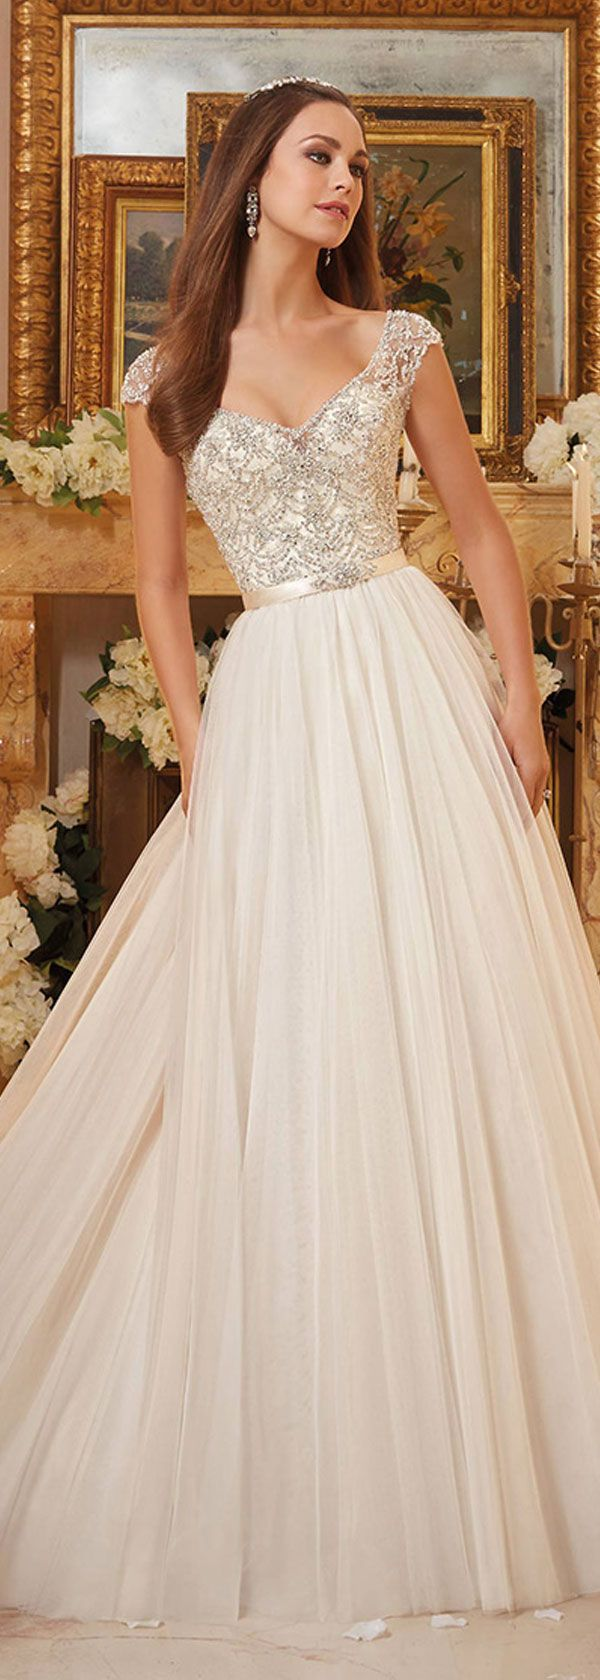 Wonderful Tulle V-neck Neckline A-line Wedding Dresses With Beaded Embroidery